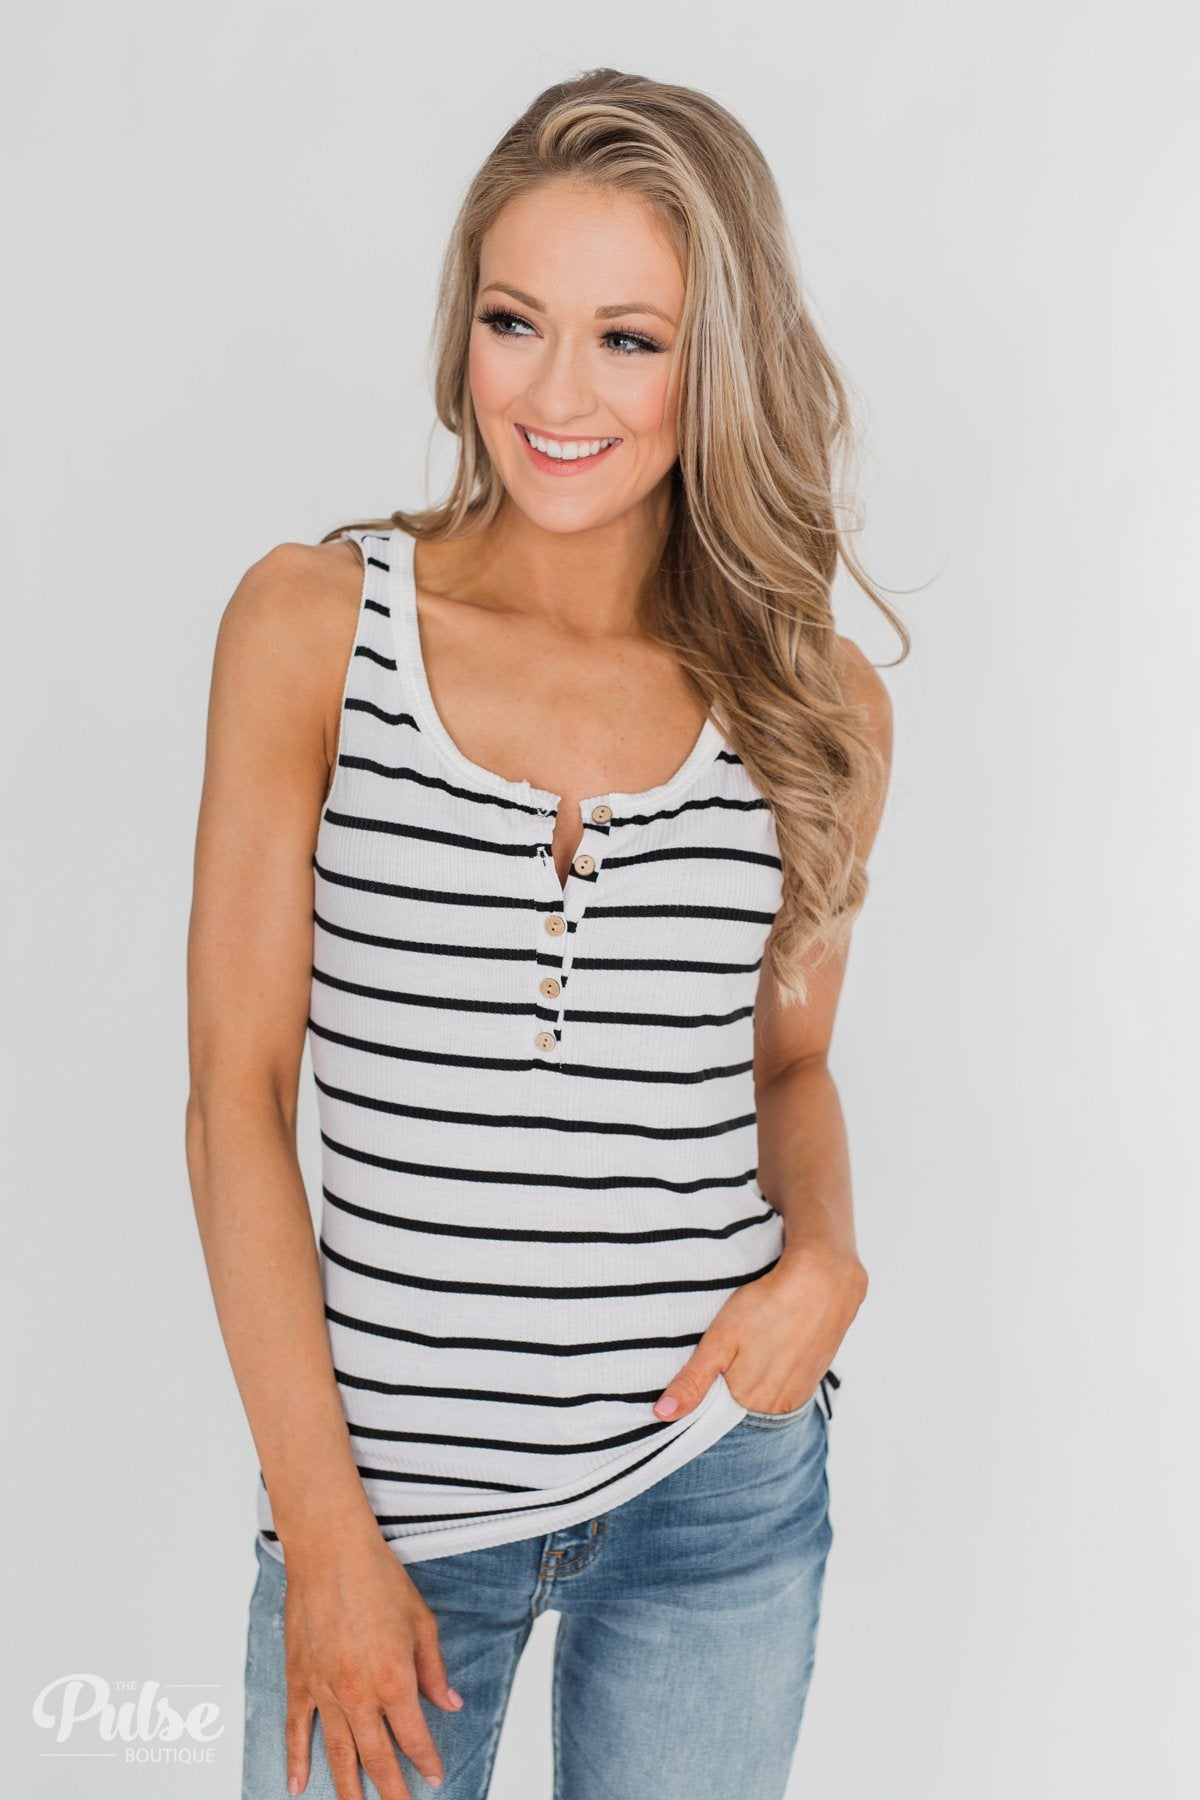 Always Need You 5-Button Henley Tank - Black & White Striped